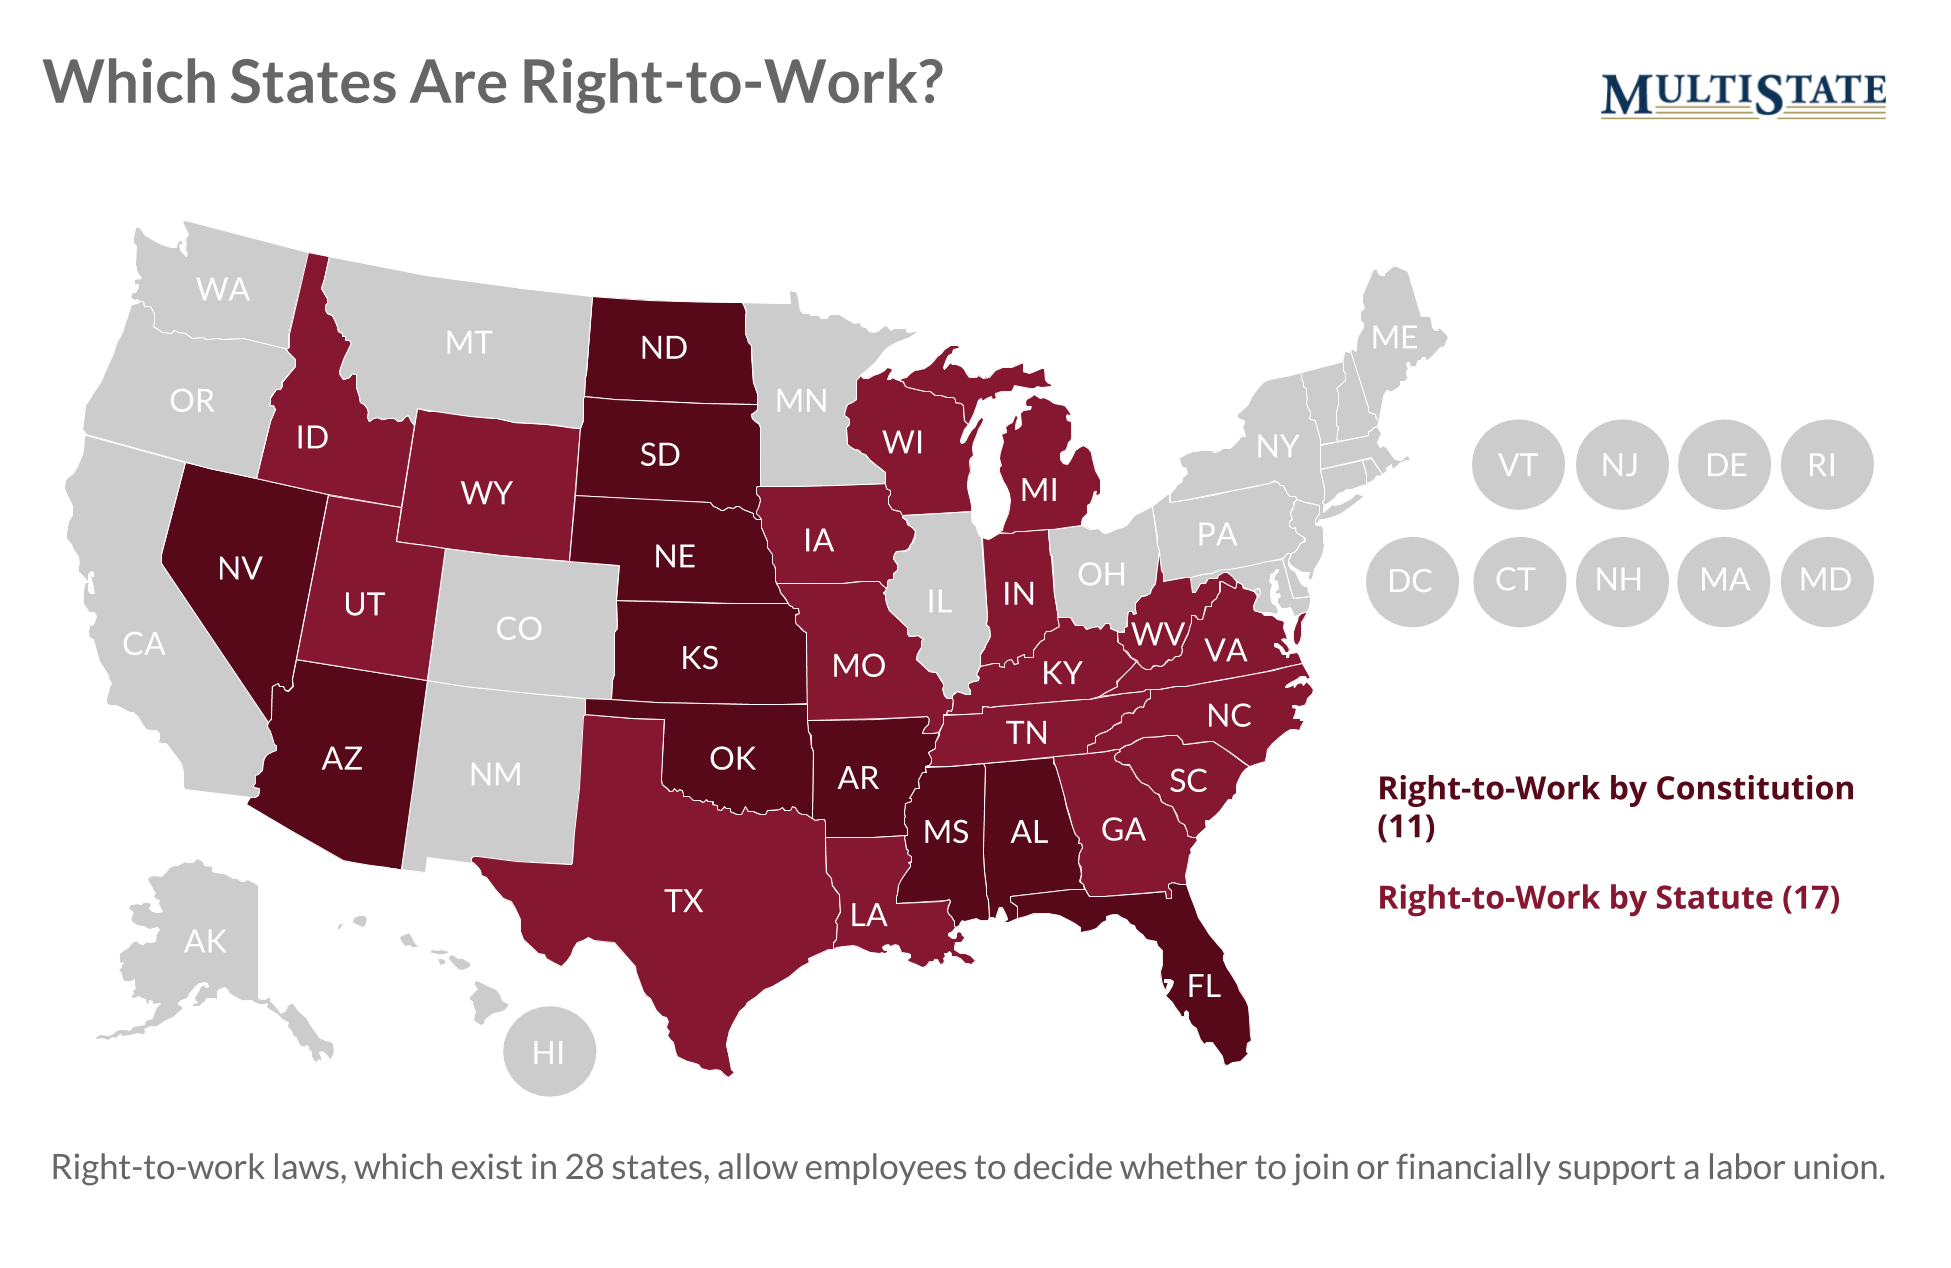 State Map_Right-to-Work_Master (1).png